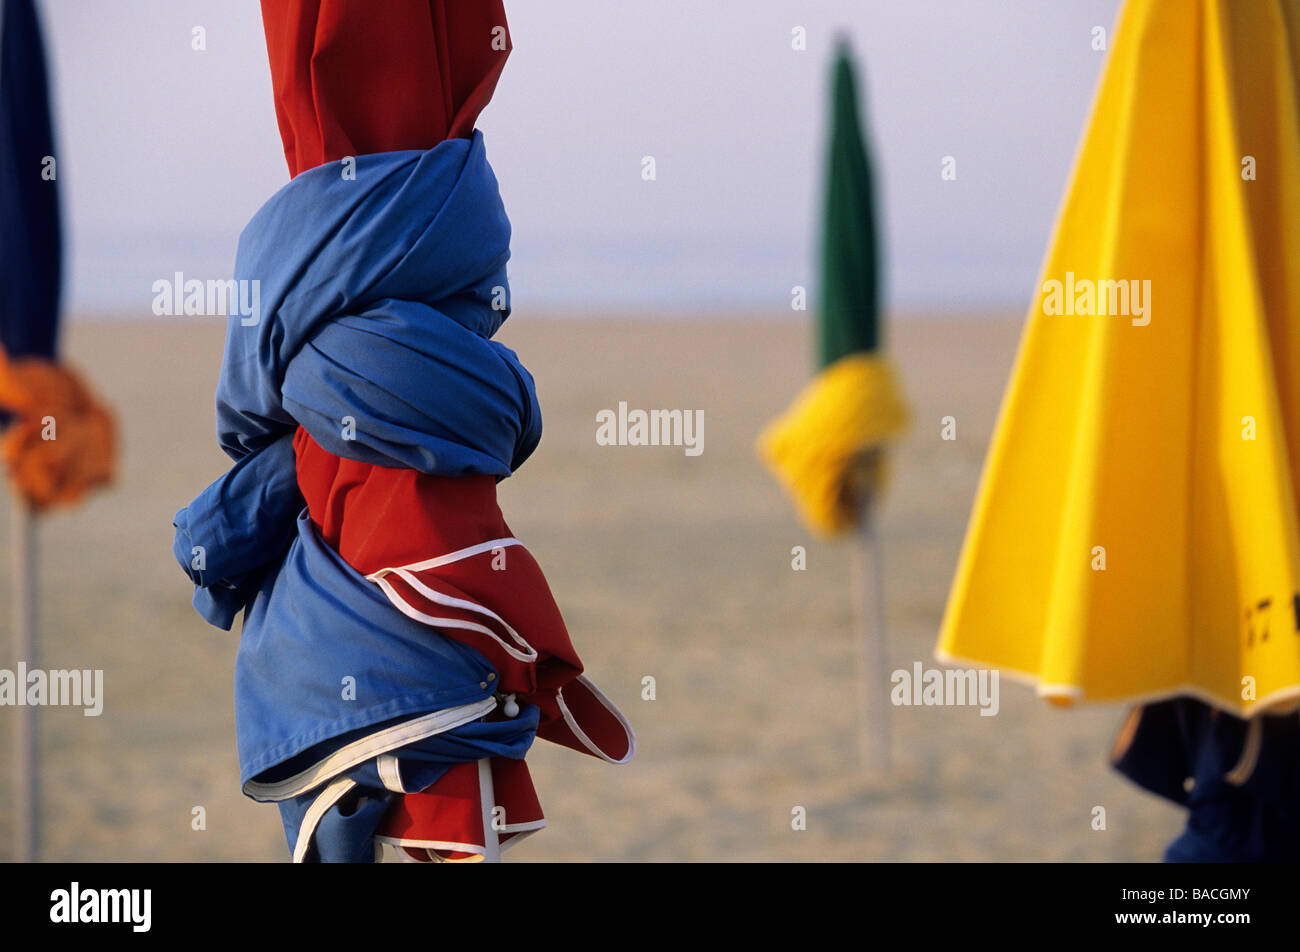 France, Calvados, Pays d'Auge, Deauville, sunshades on the beach - Stock Image